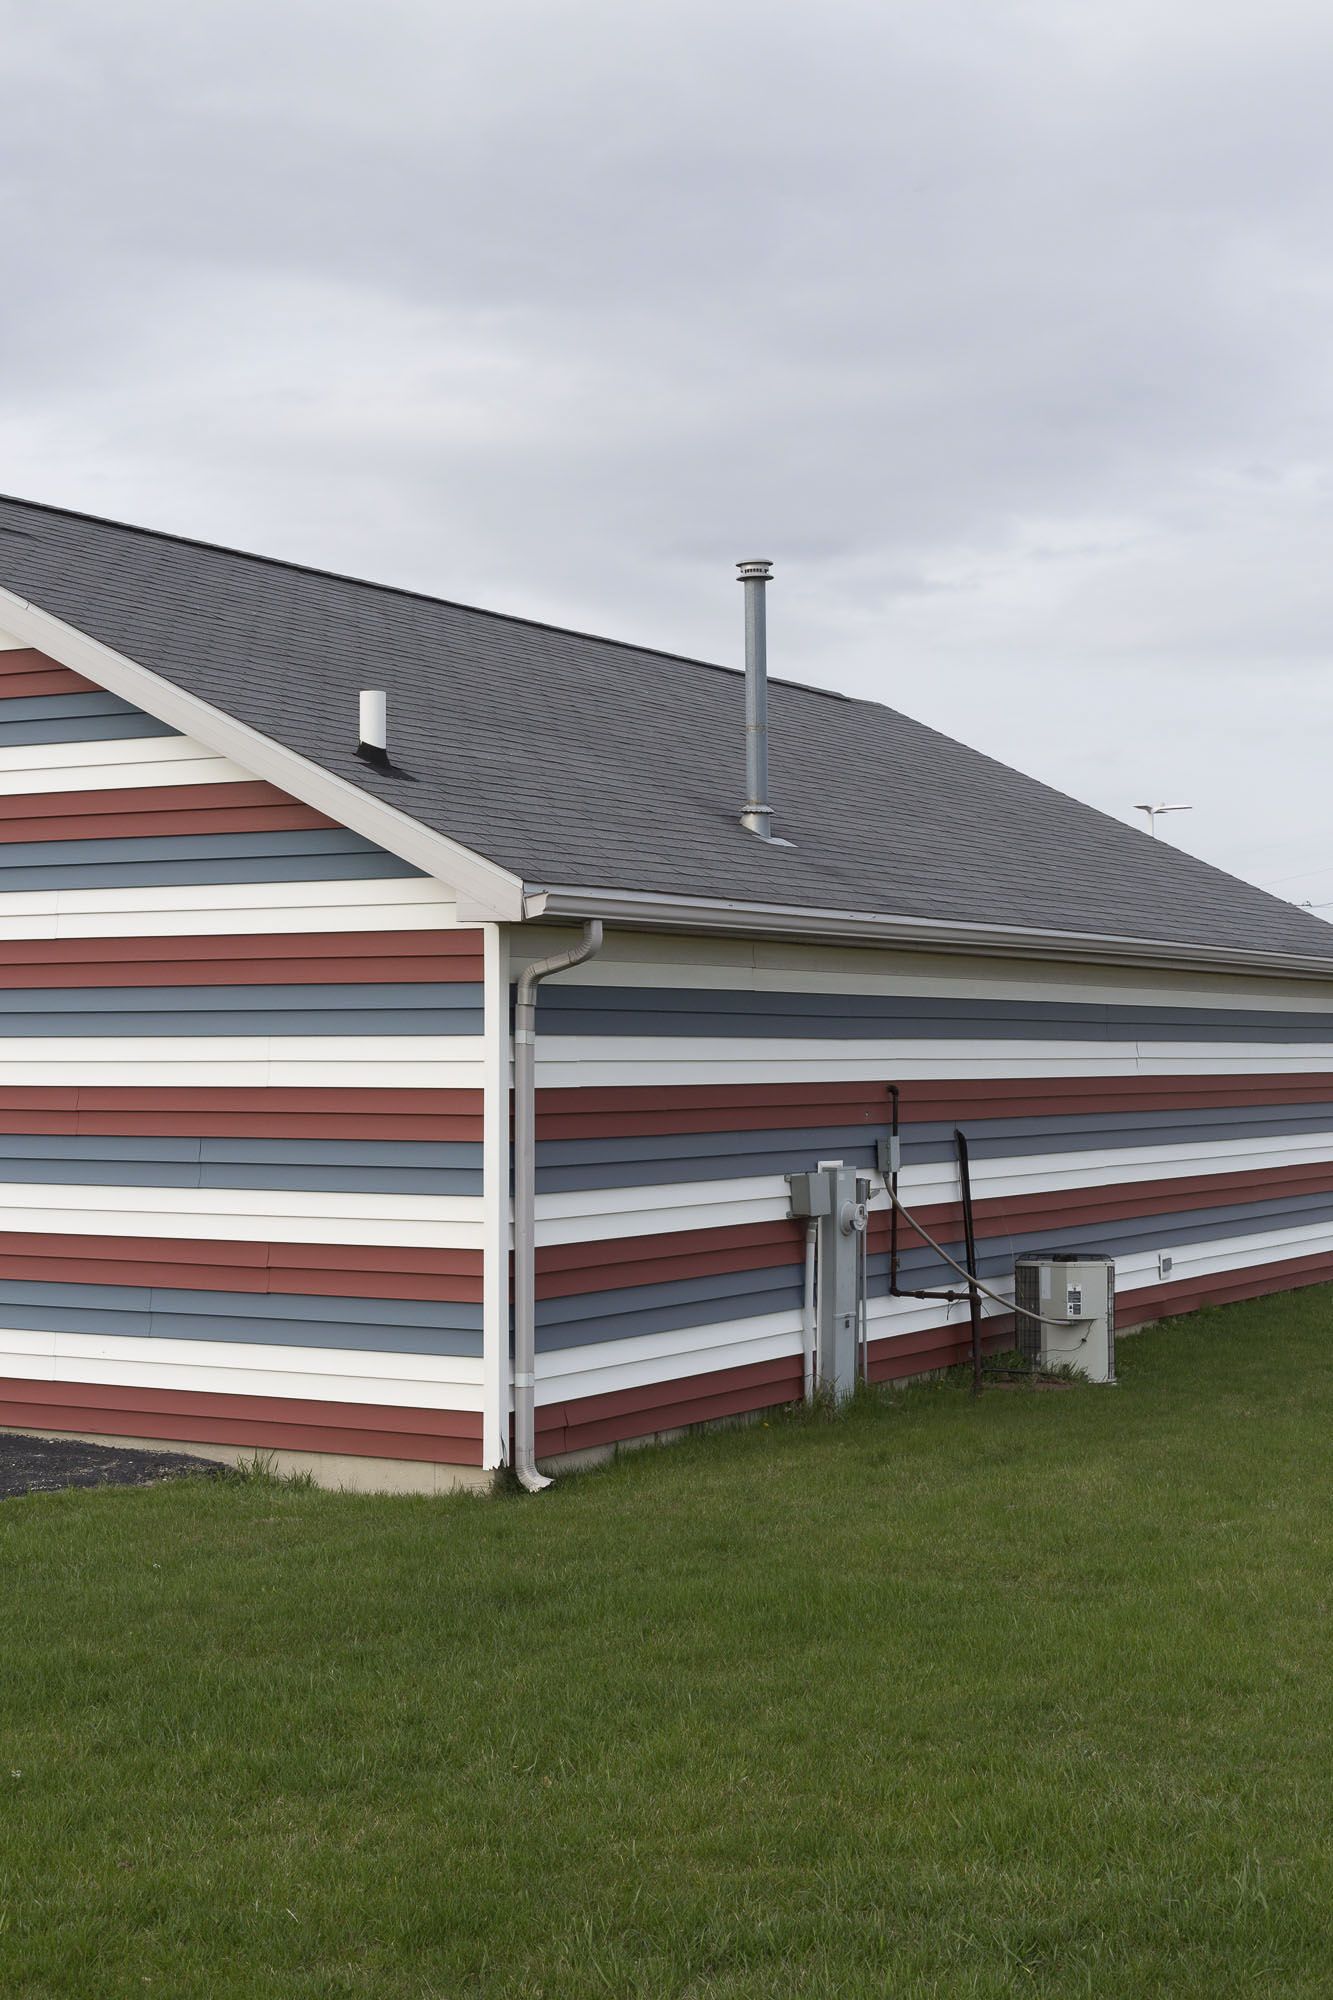 Siding in Stripes